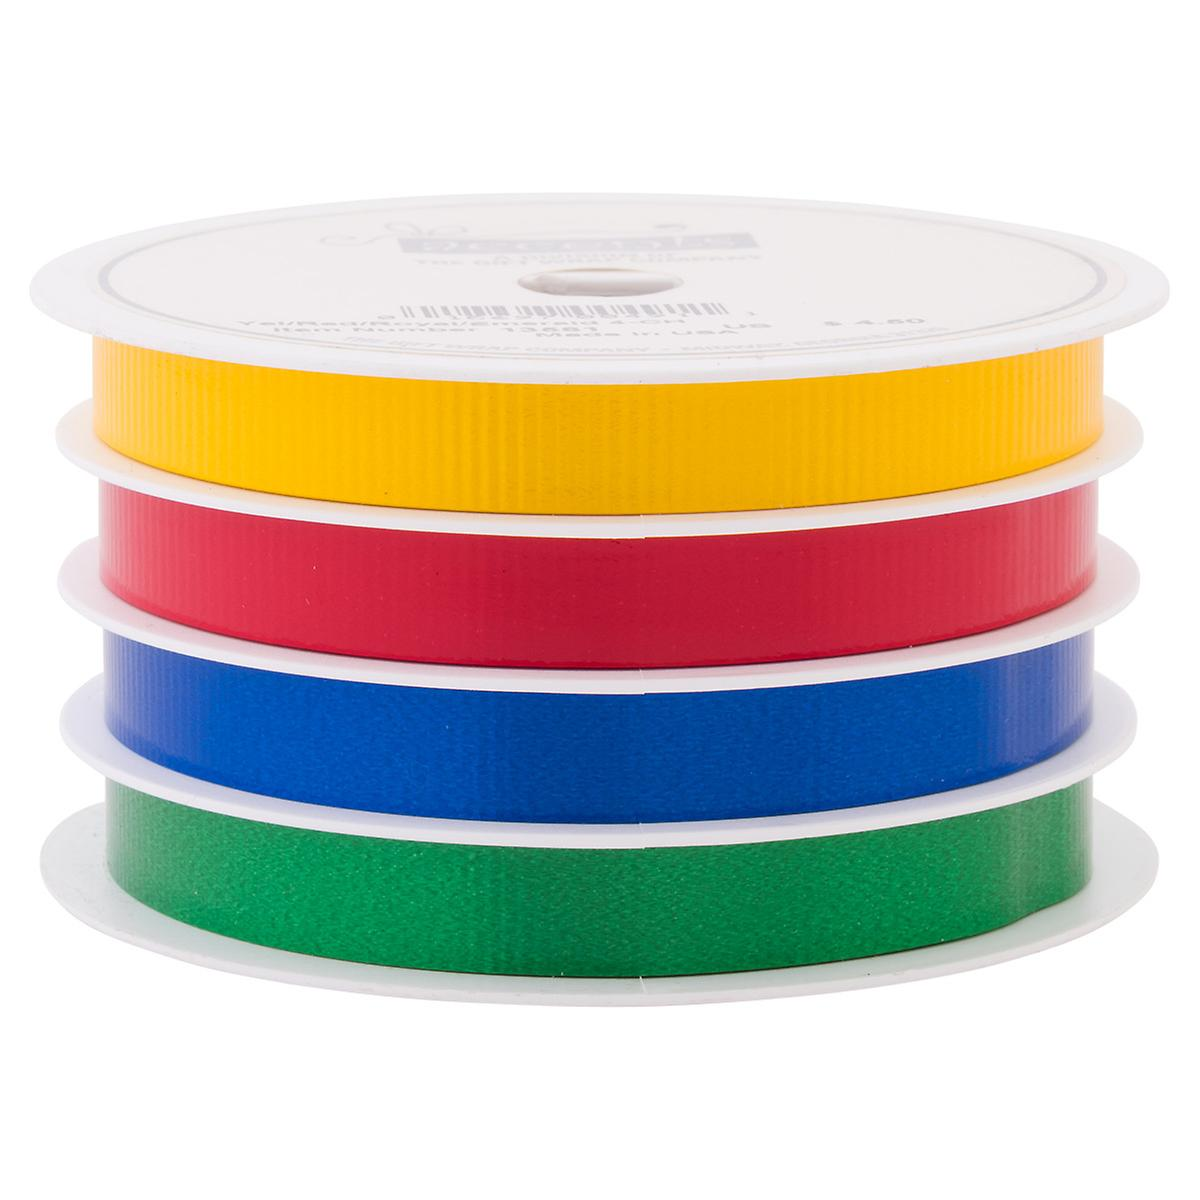 Classic Multi-Channel Curling Ribbon